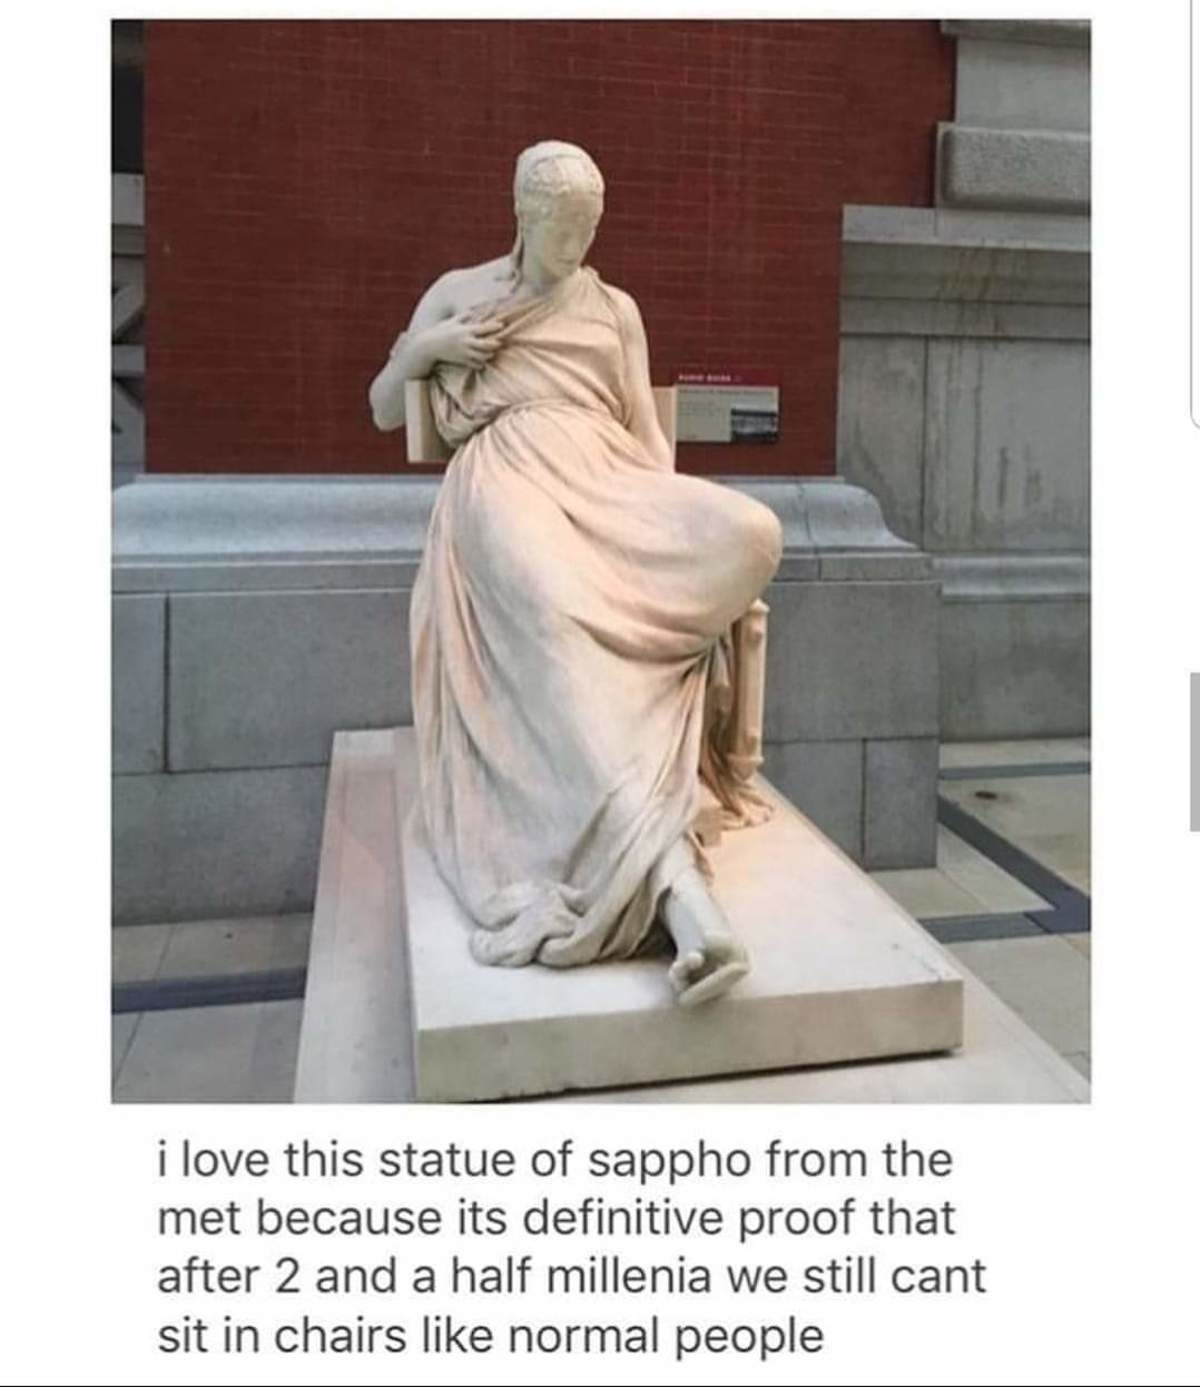 wiry Chinese. .. 30 sec google search (and casual knowledge of human history) says this statue is from 1895, not 2500 years ago, you hyperbolic snerdburglar. https://www.metmuse